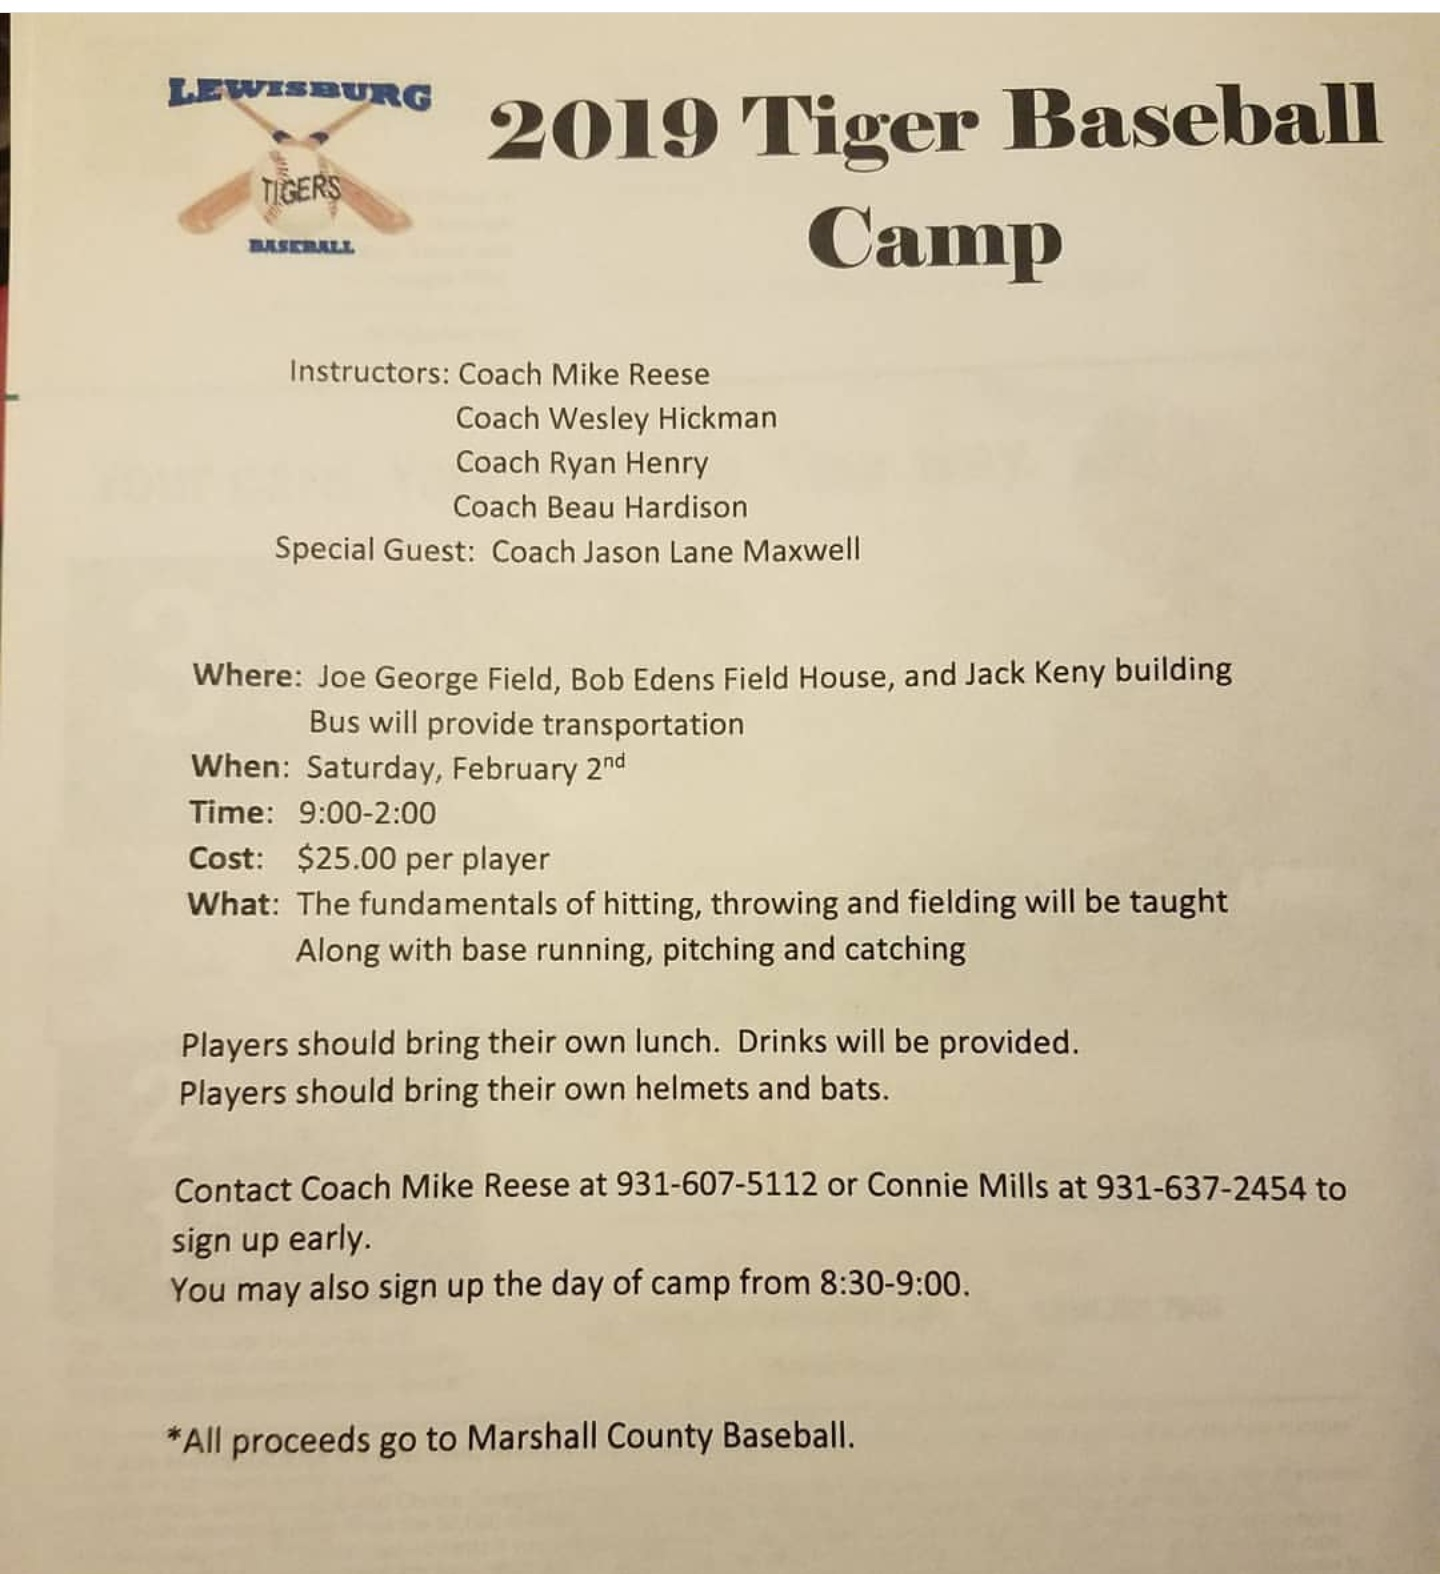 Tiger Baseball Camp